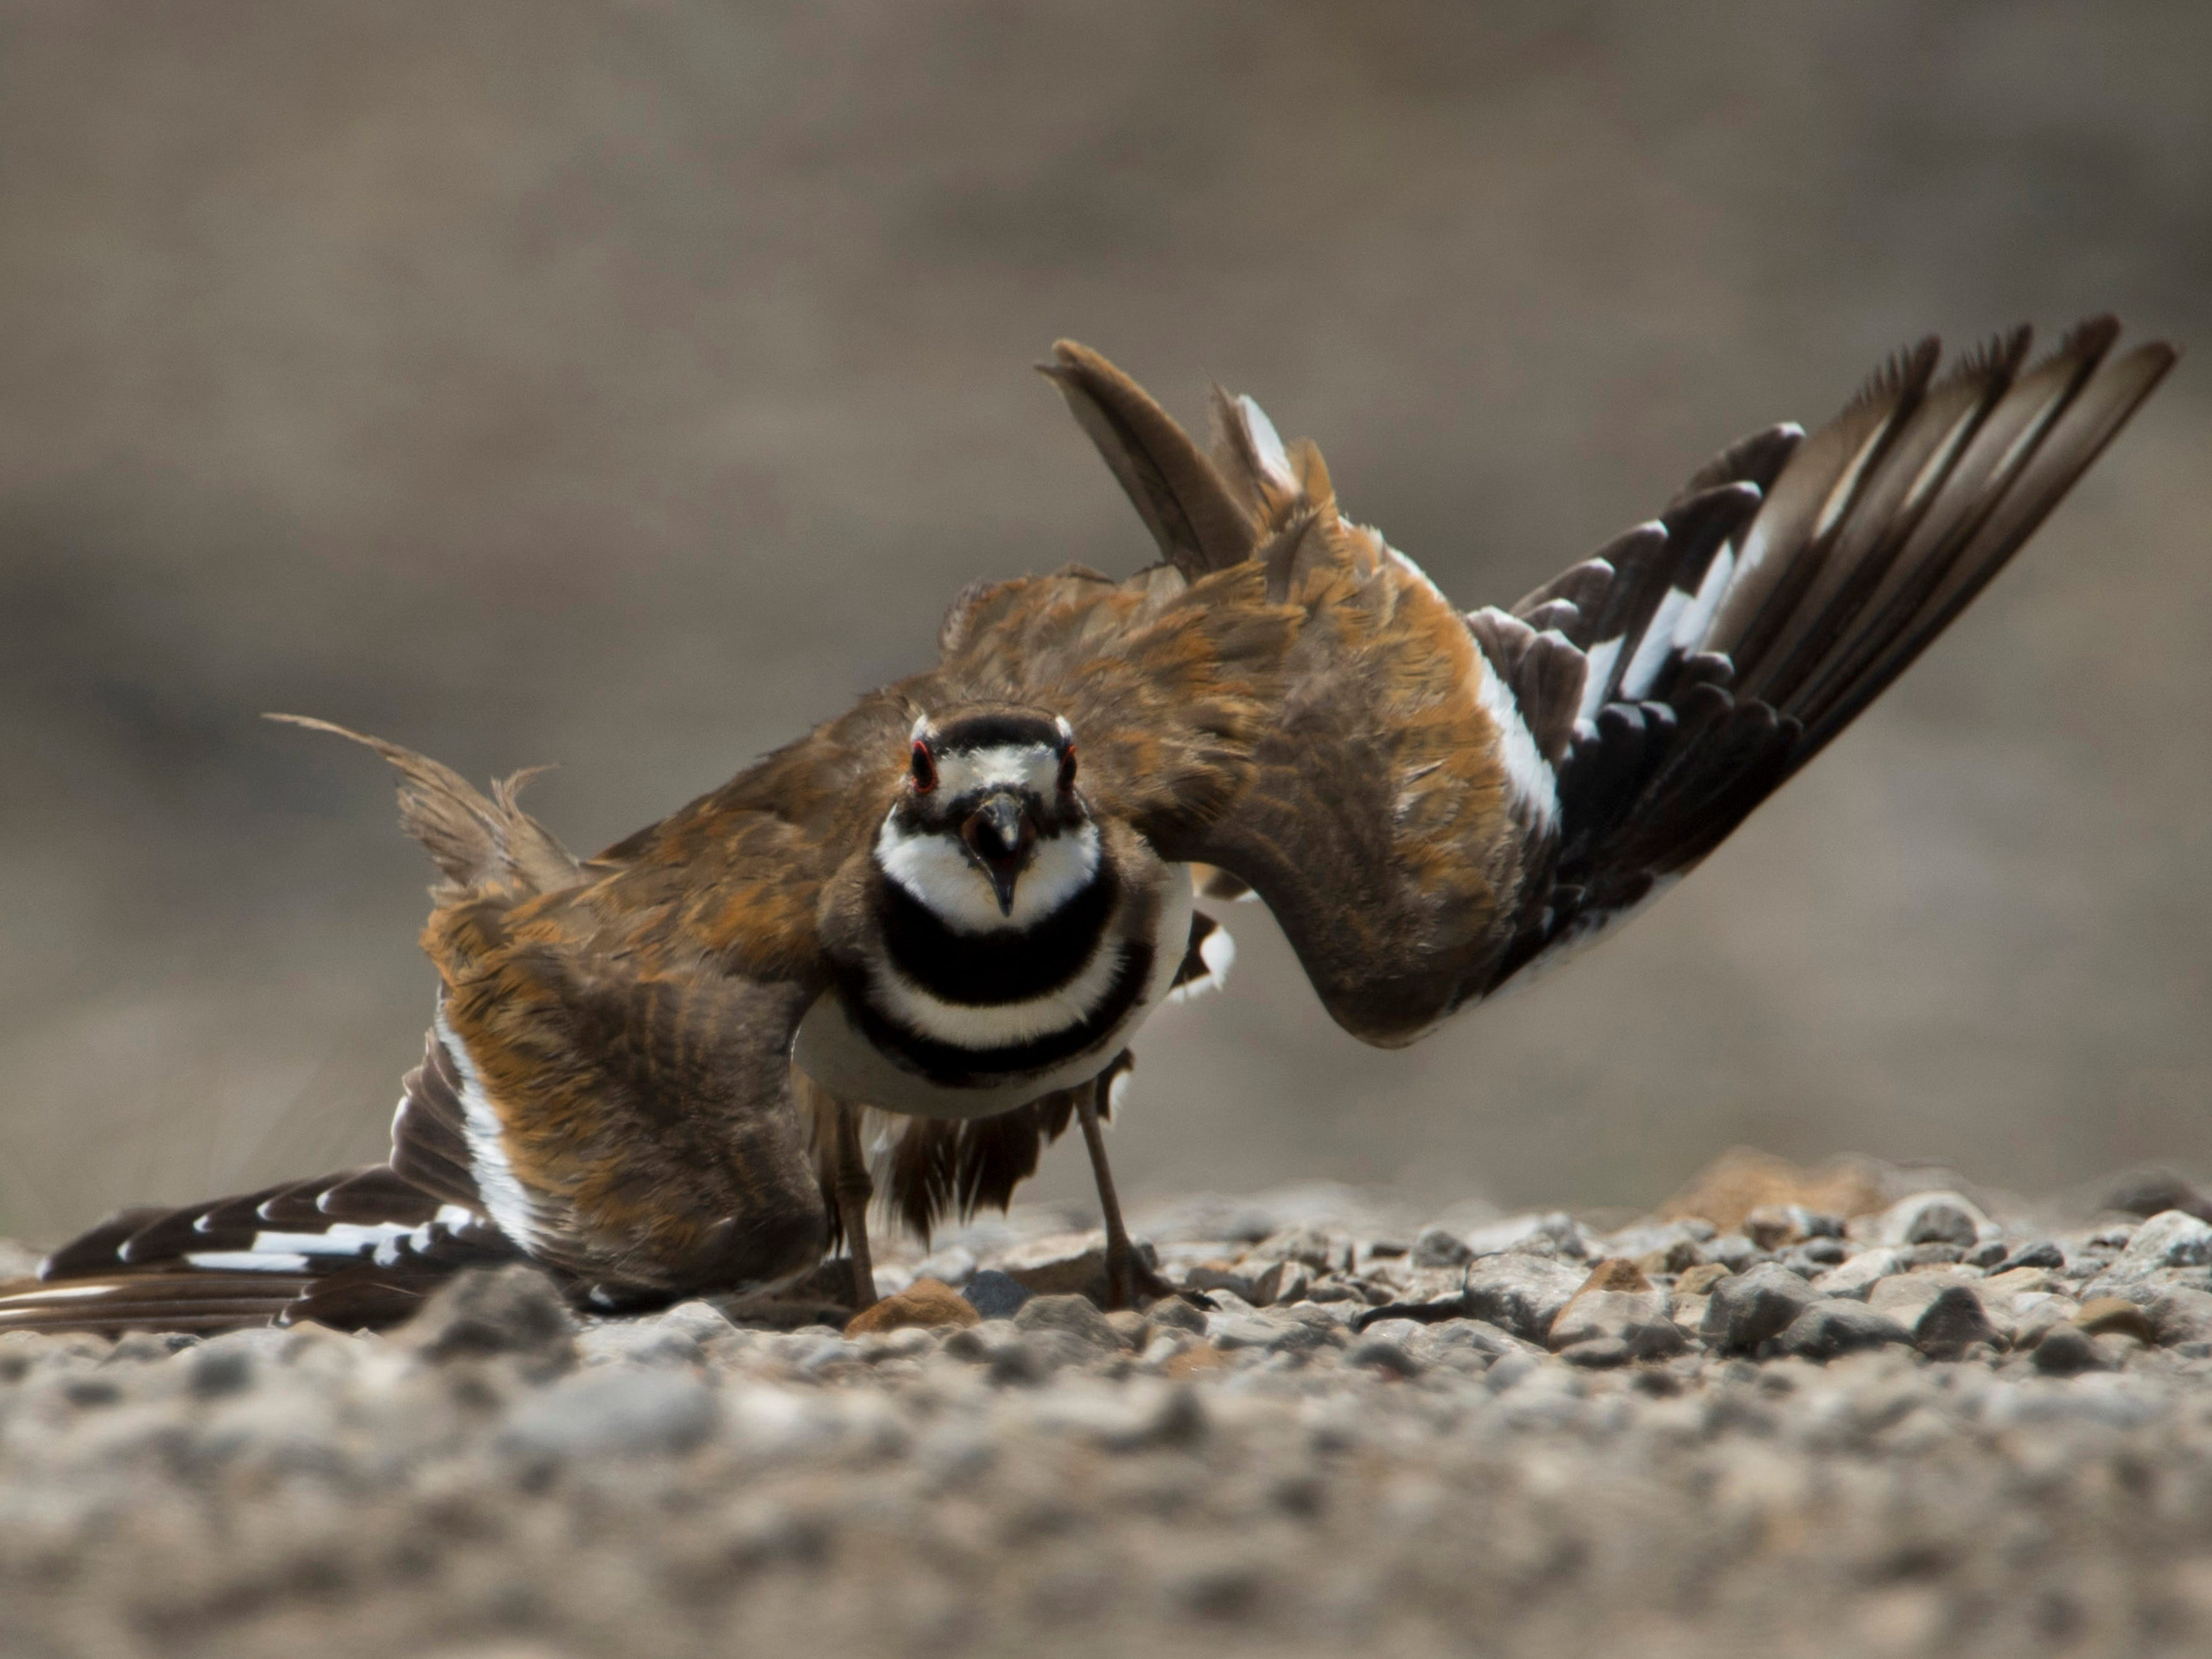 A killdeer feigns an injury to lead an intruder away from its offspring on a gravel road at the Patoka National Wildlife Refuge in Southern Indiana in late June. Southern Indiana offers bird watchers a wide variety of feathered finds.